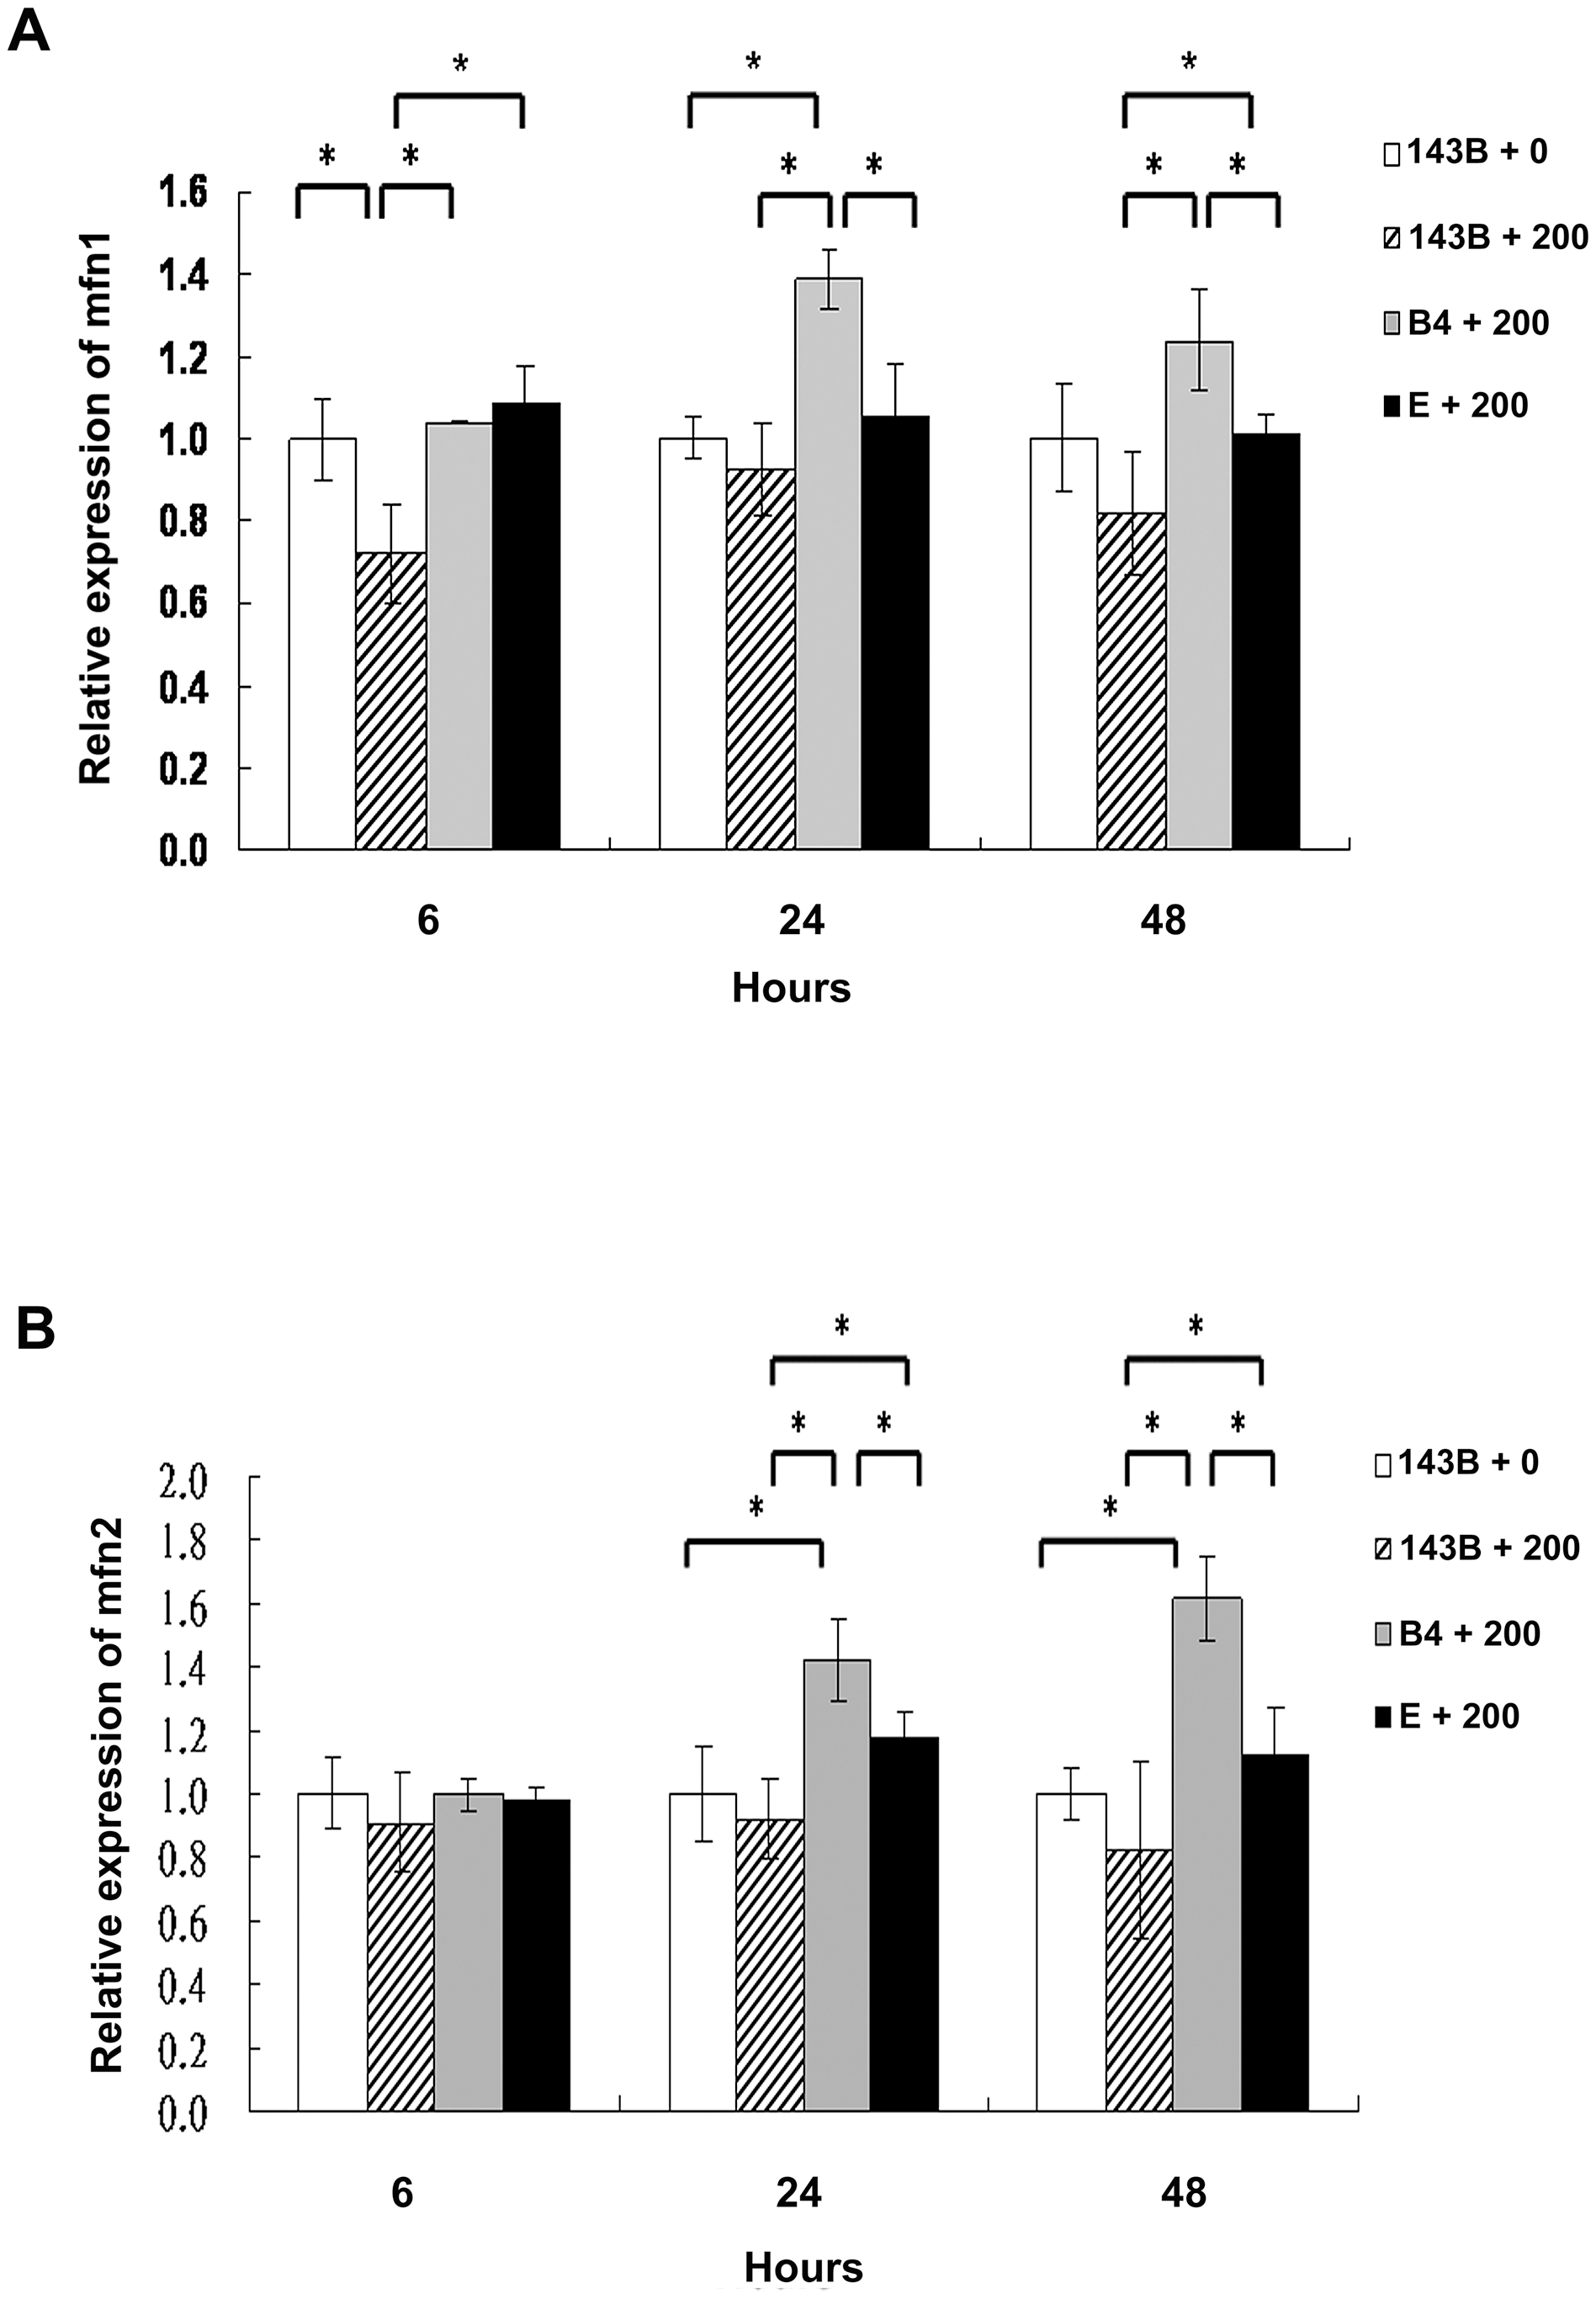 Analysis of the mitochondrial fusion molecules expression in the parental 143B cells, and cybrid B4 and E cells after the bile acid treatment.